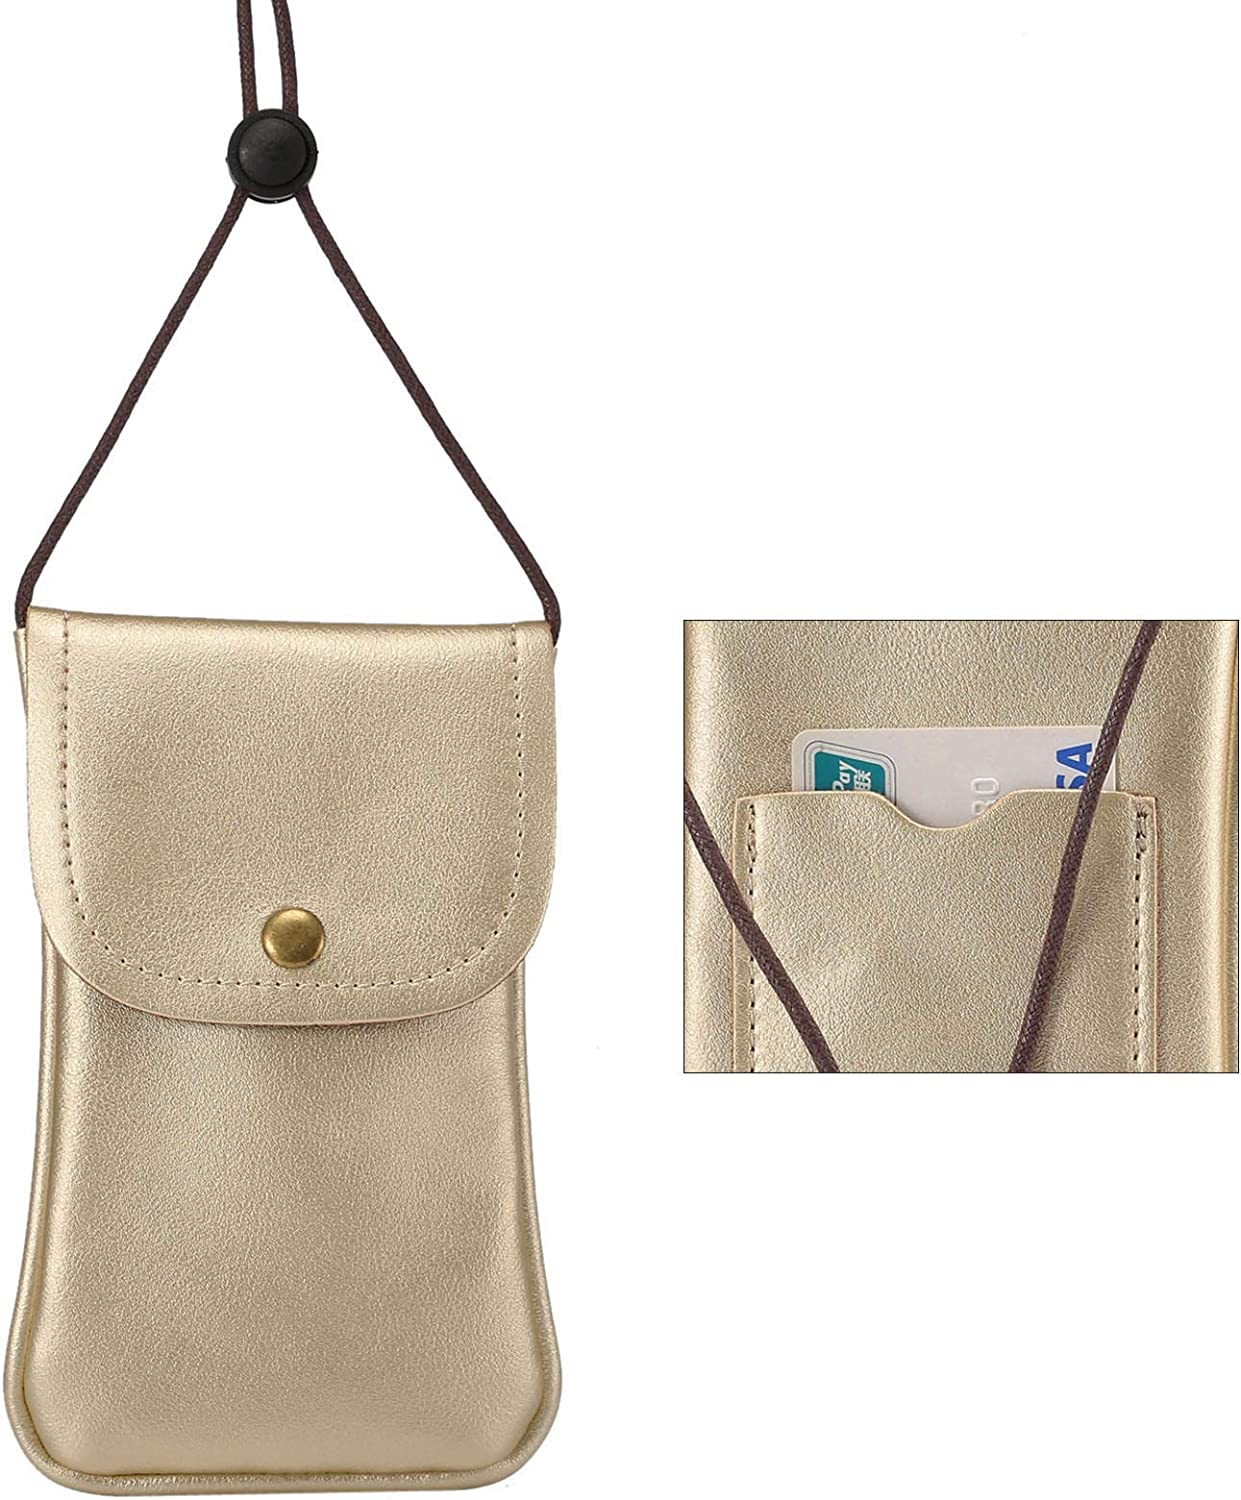 Cell Phone Neck Pouch, Techcircle PU Leather Carrying Bag with Credit Card Holder Adjustable Strap, Small Travel Purse for iPhone 11 XR XS Max SE 8 7 6 Plus, Galaxy S10 S7 Edge A10 J7, Moto G6 (Gold)